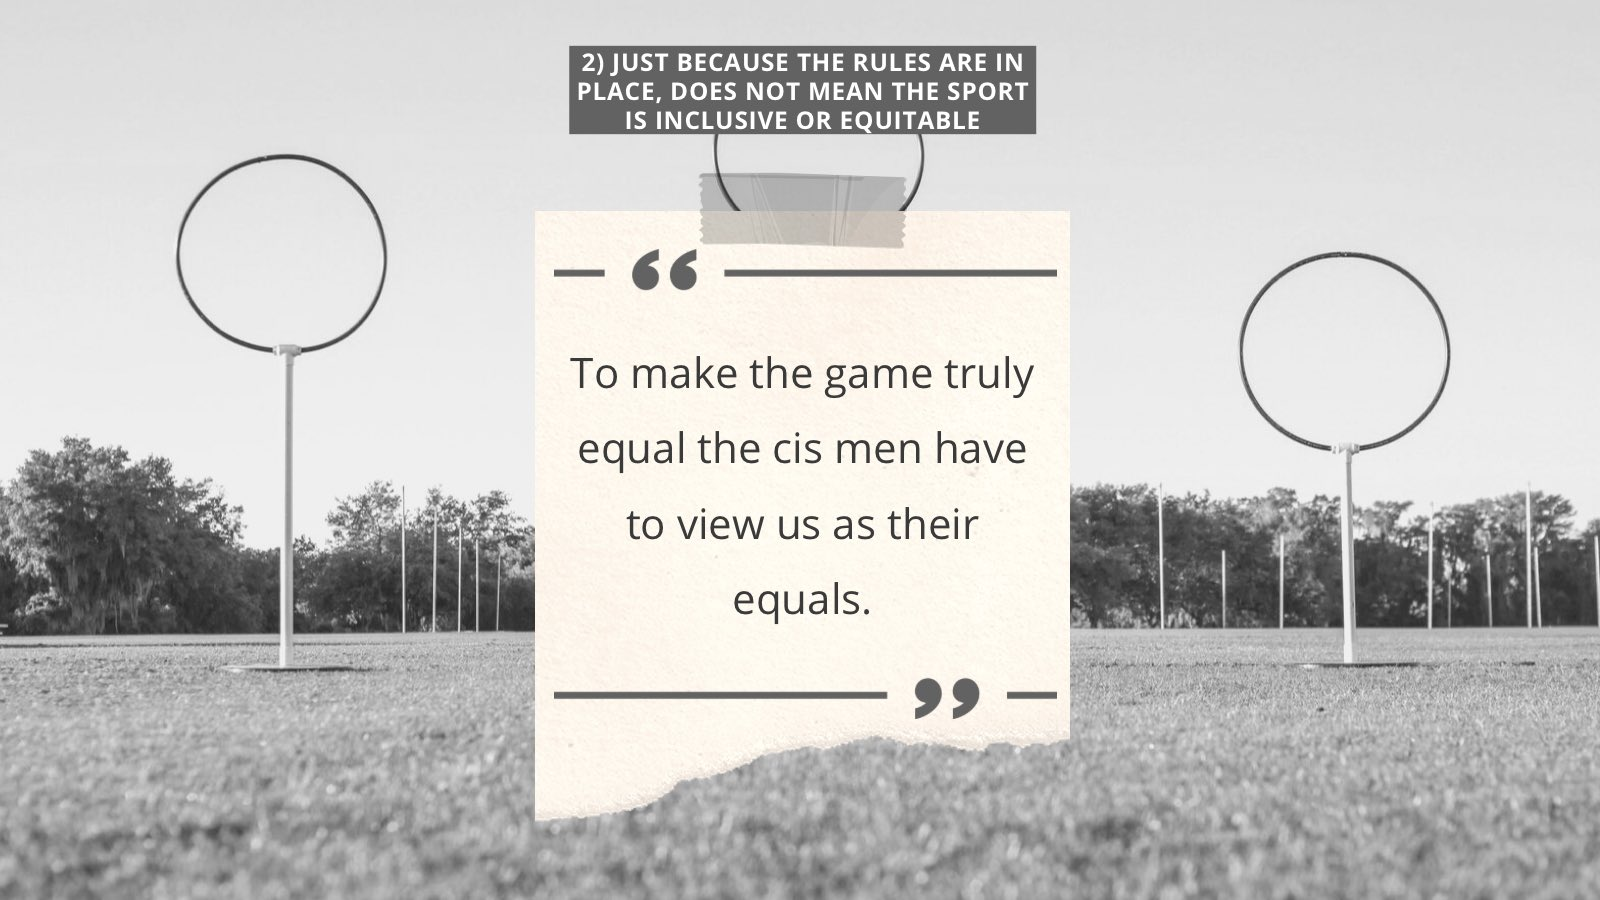 The second takeaway is to go beyond the rules in ensuring inclusivity and equity.